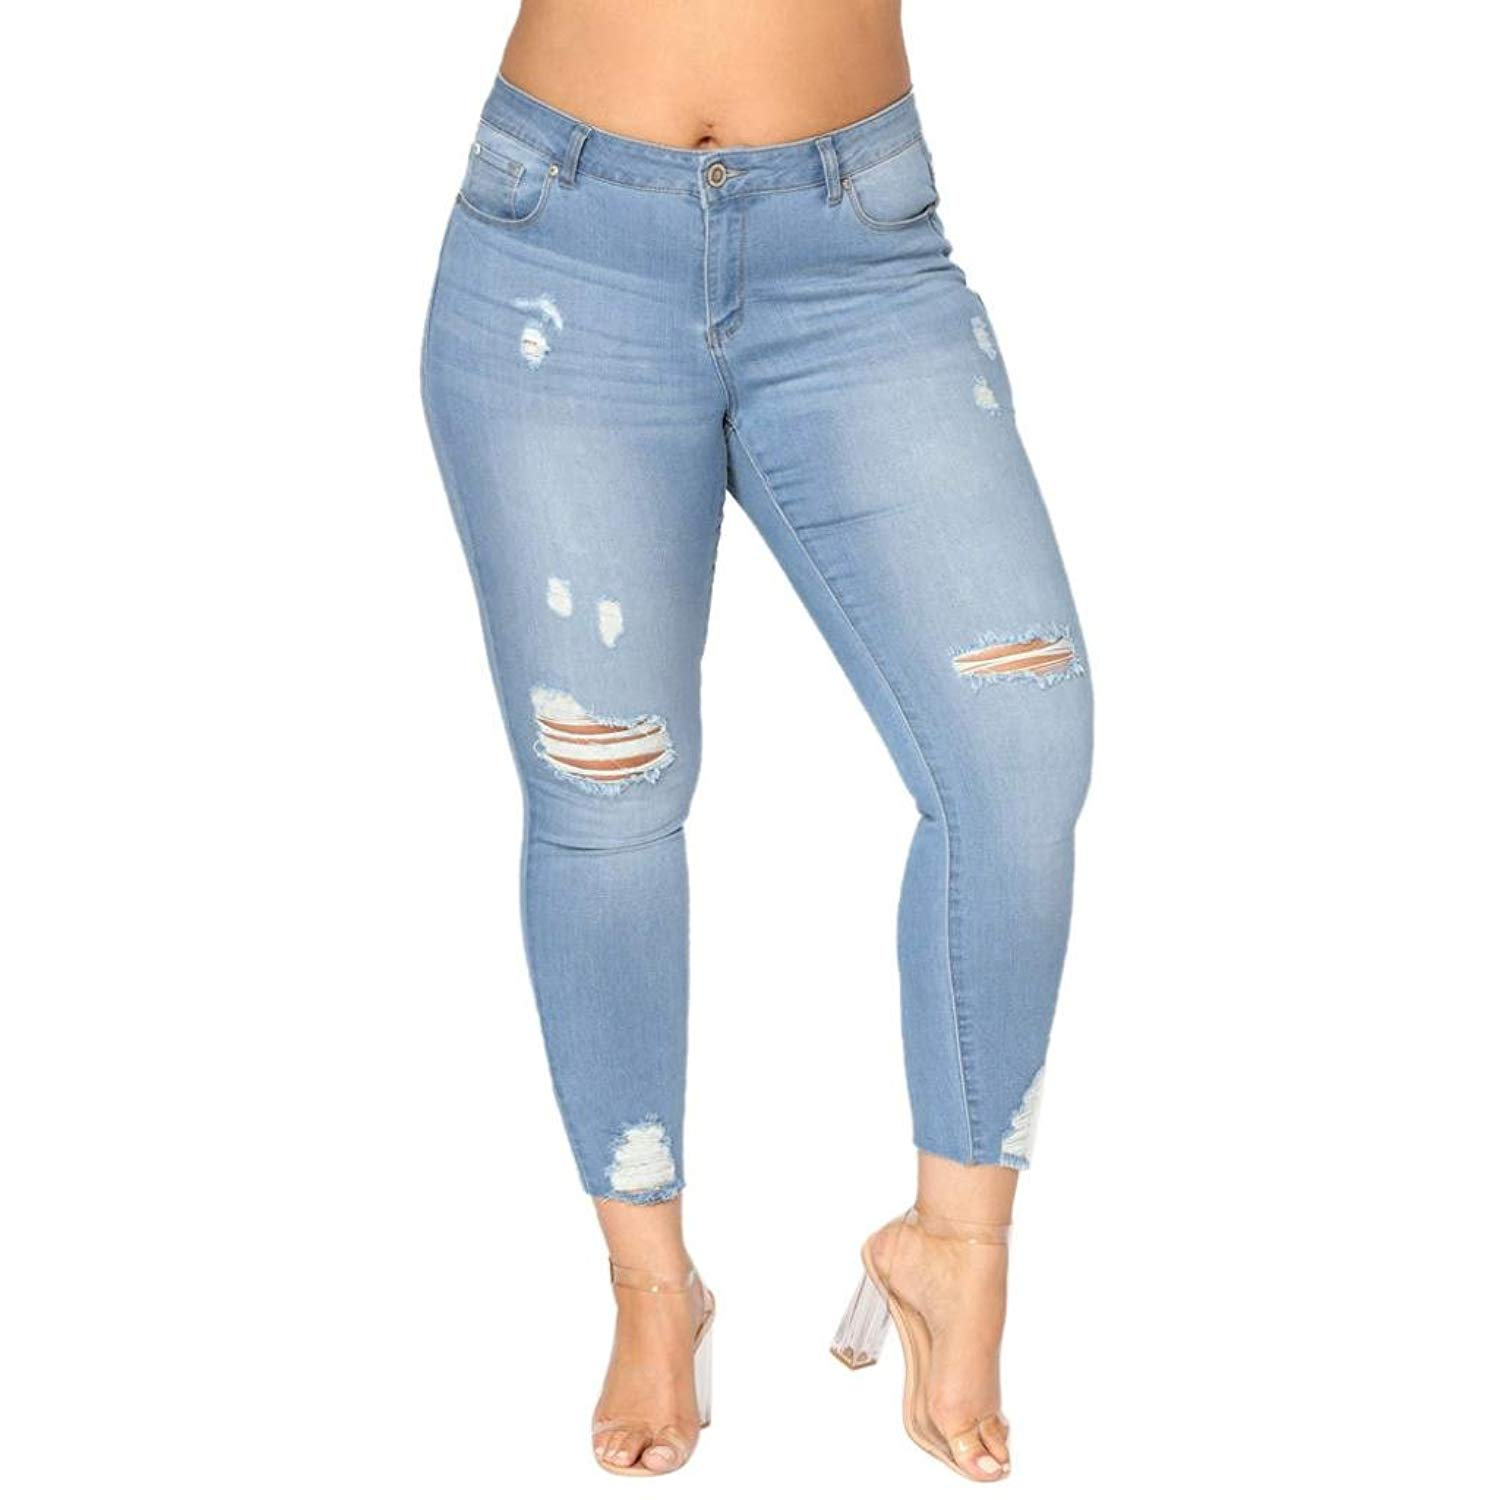 f60f2ffe0a5 Get Quotations · Leedford Ripped Holes Jeans